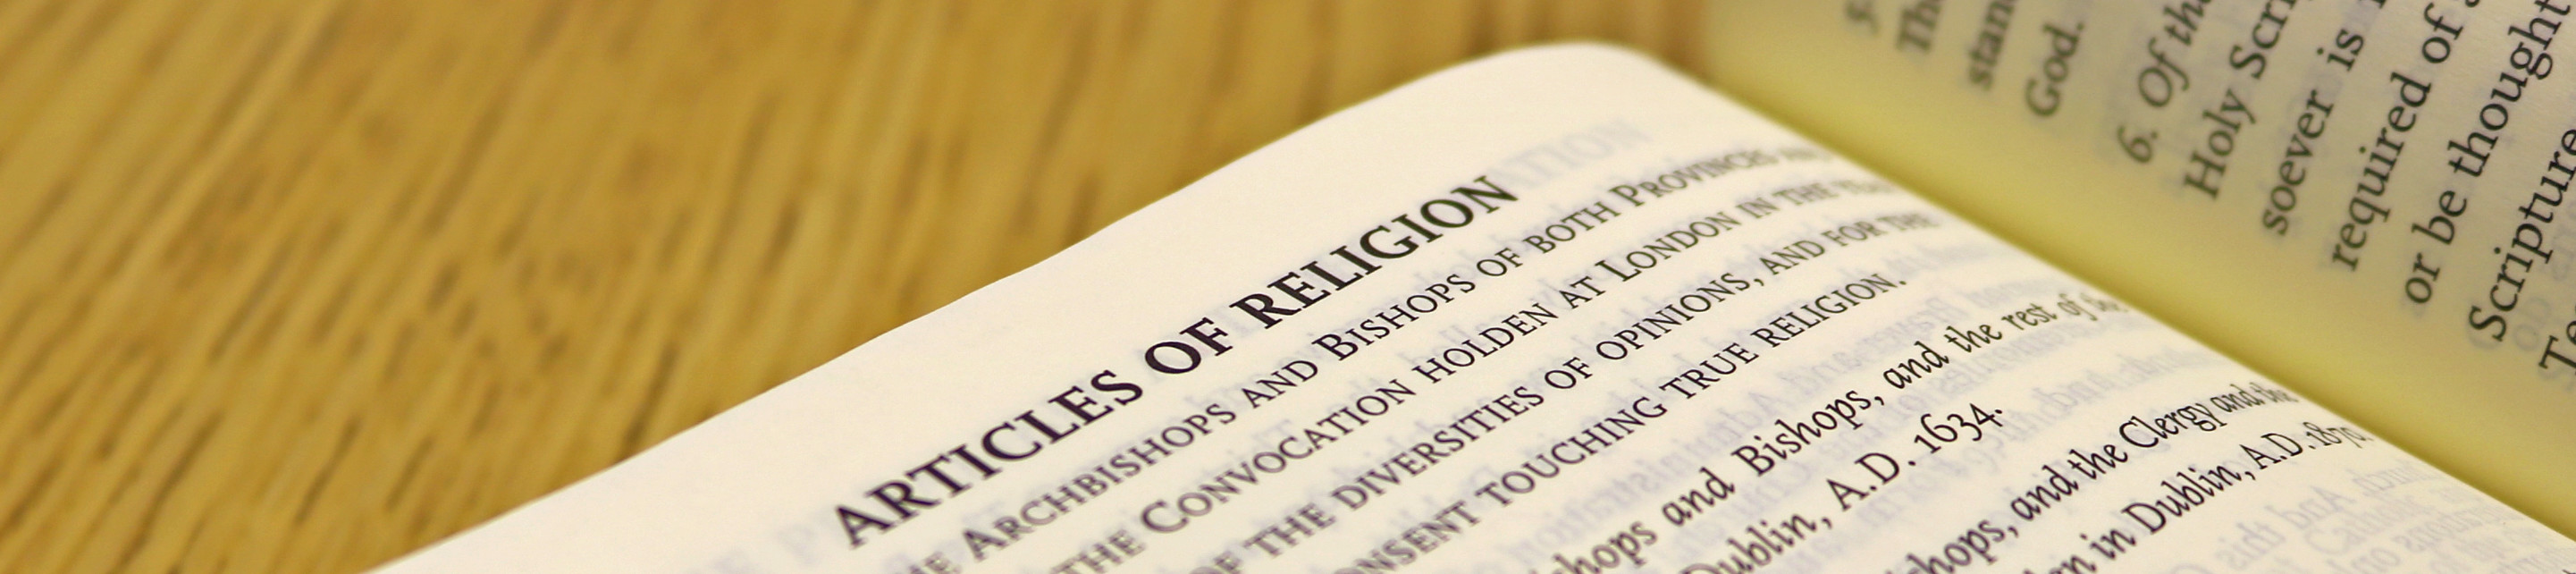 39 Articles of Religion